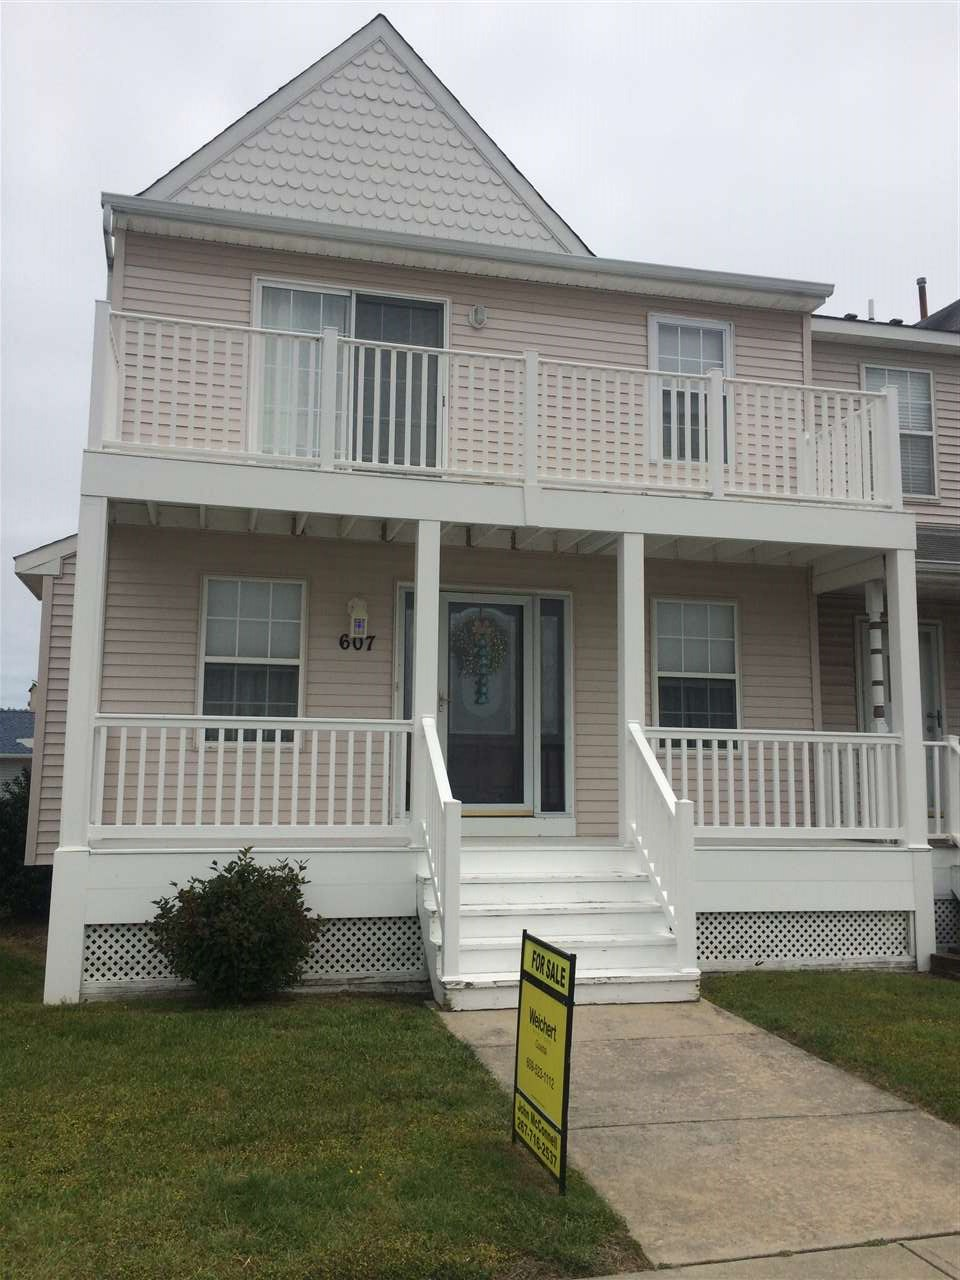 607 W Spruce Avenue - North Wildwood